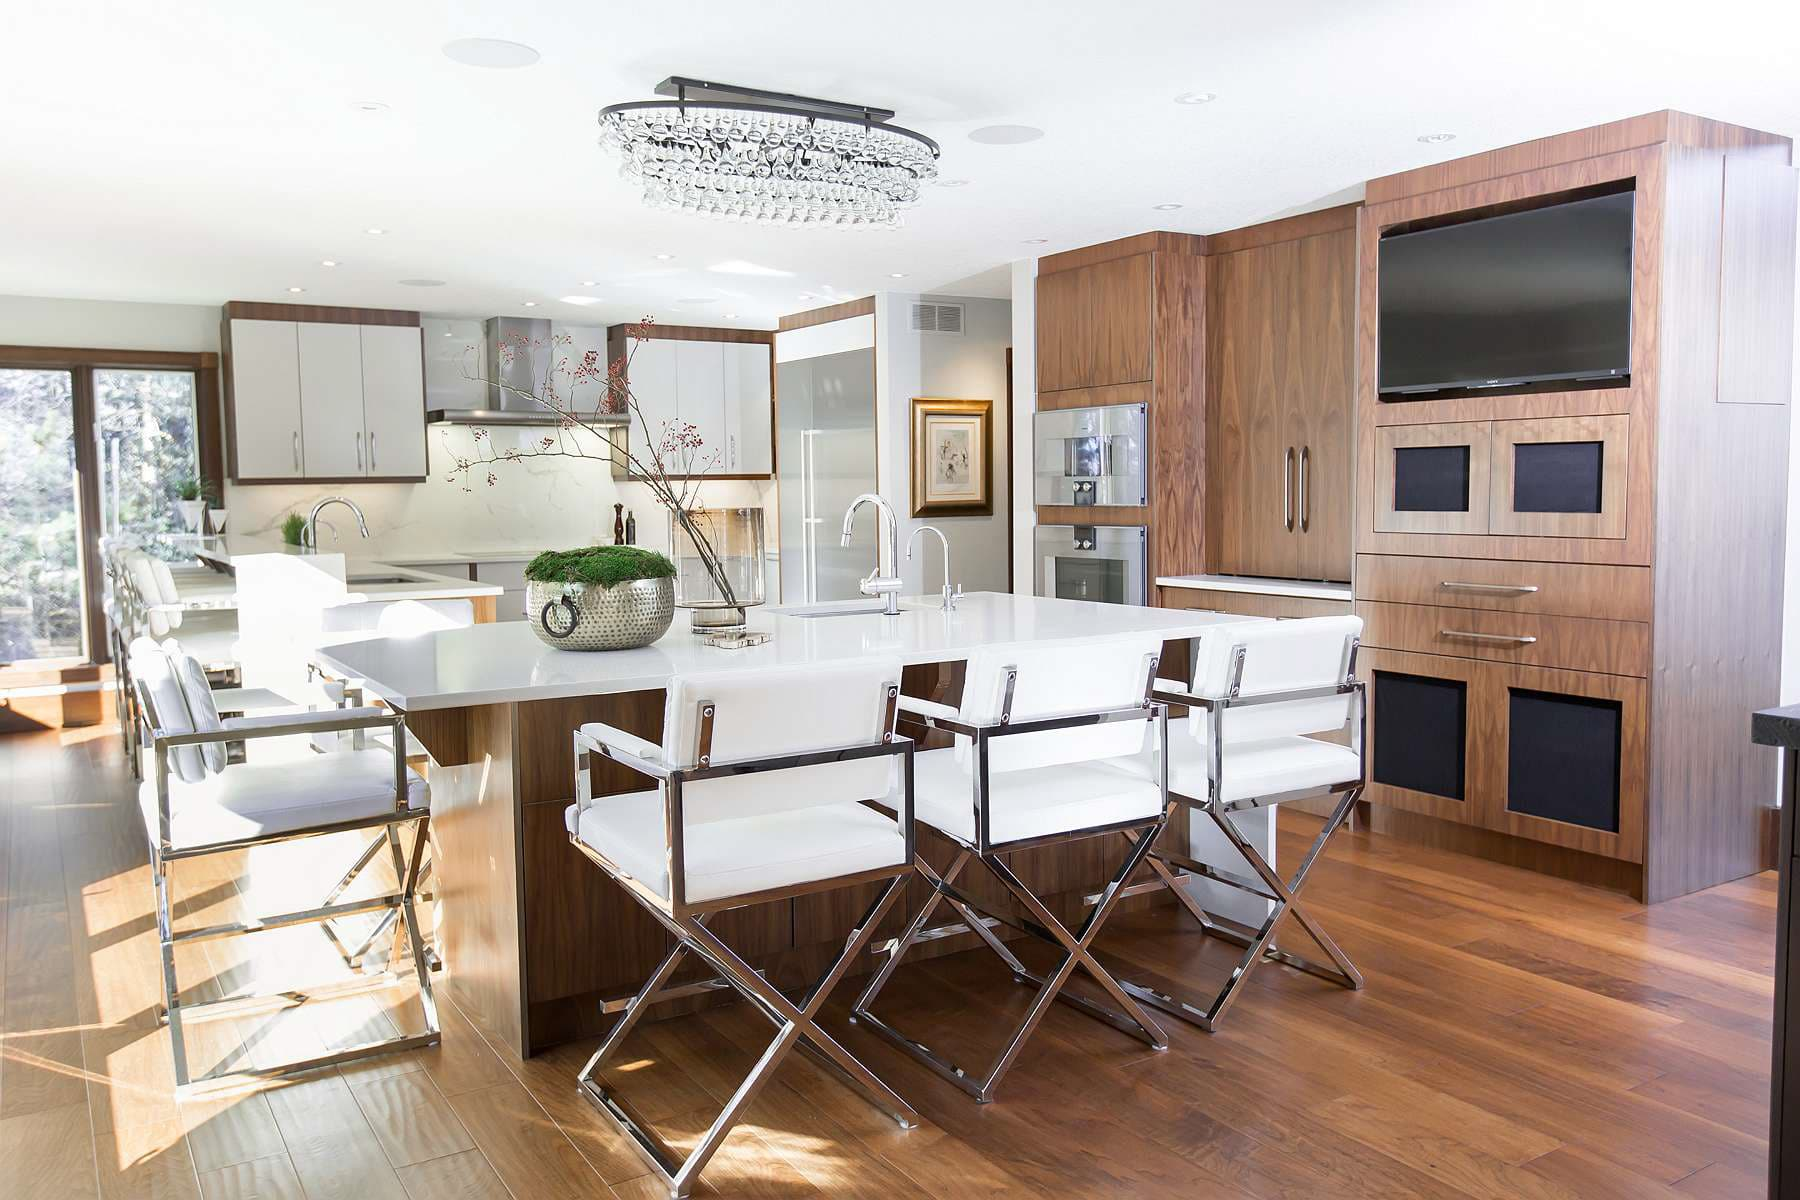 Kitchen featuring walnut cabinets with white doors and walnut doors, white quartz countertops and rustic finish walnut flooring